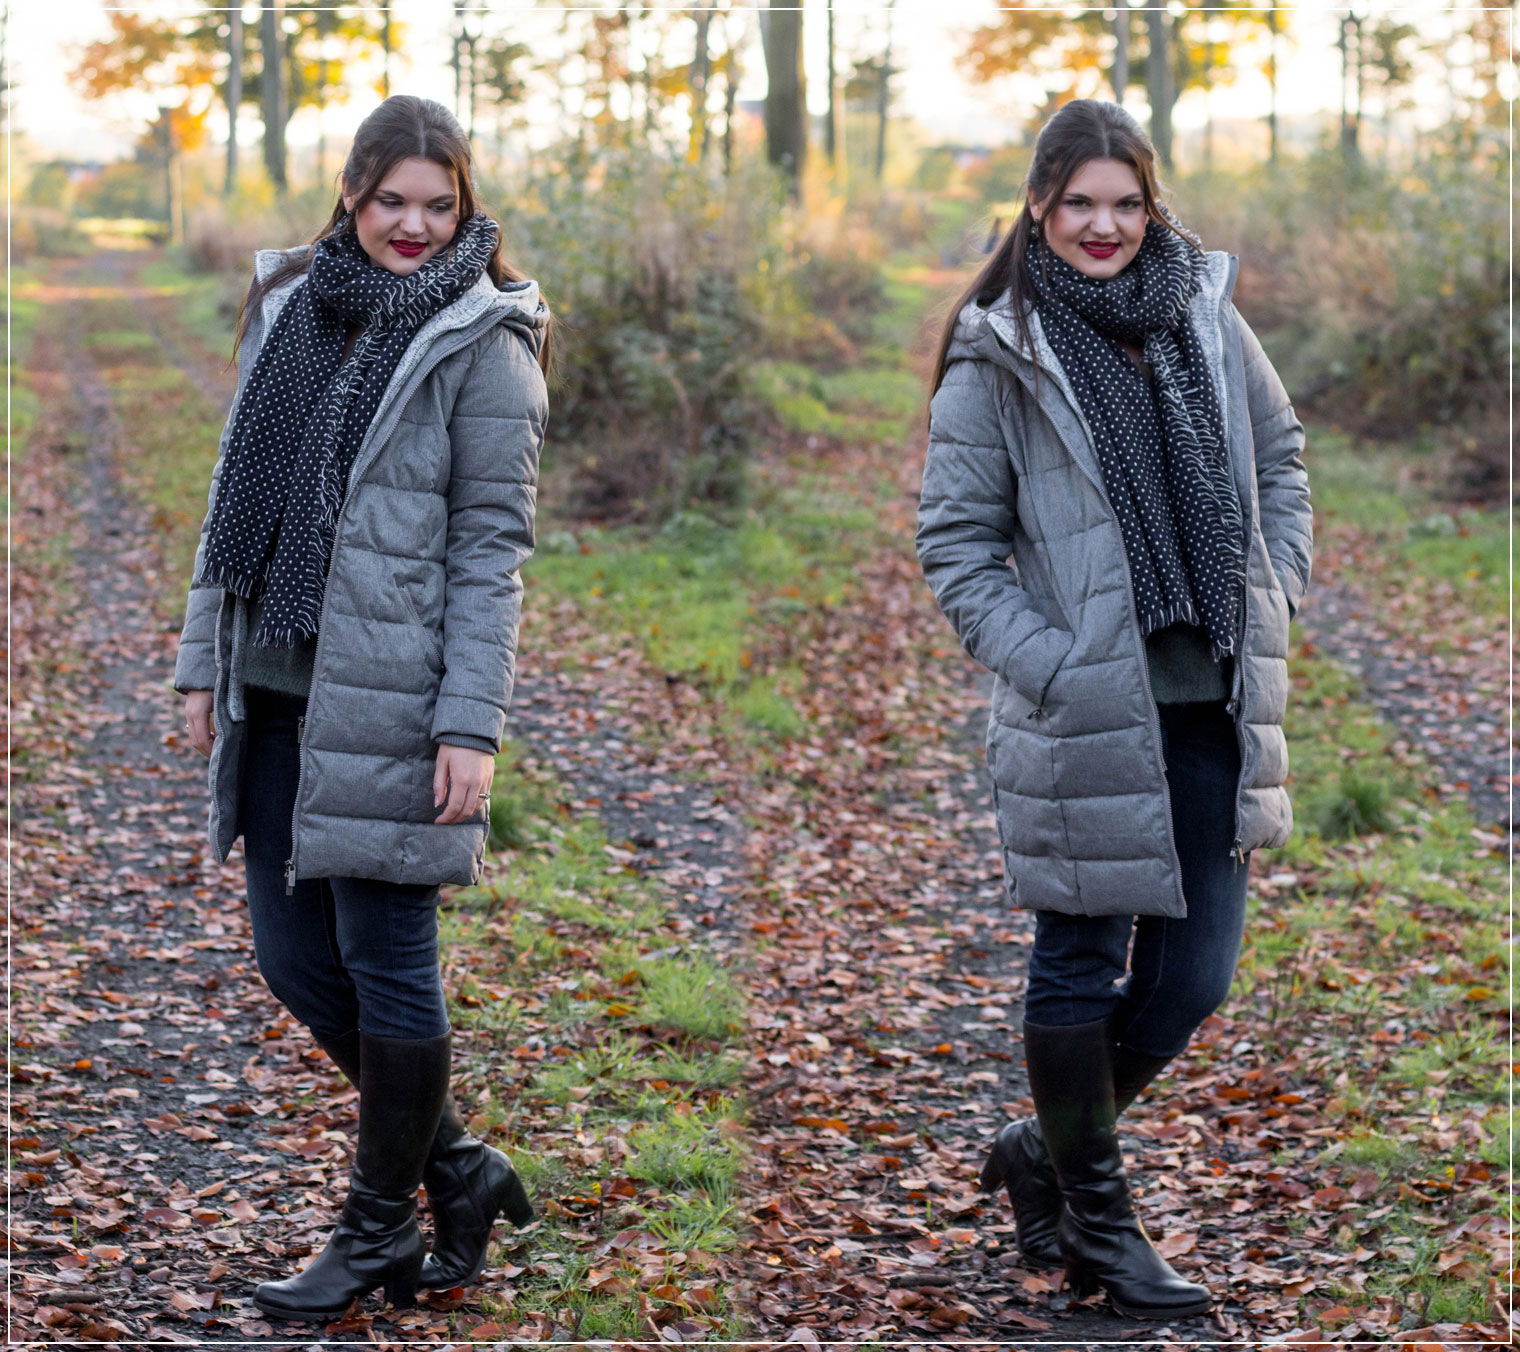 Steppjacke, Winteroutfit, Jeans Fritz, Winterstyle, Winterlook, Styleguide, Outfitinspiration, Modebloggerin, Fashionbloggerin, Modeblog, Ruhrgebiet